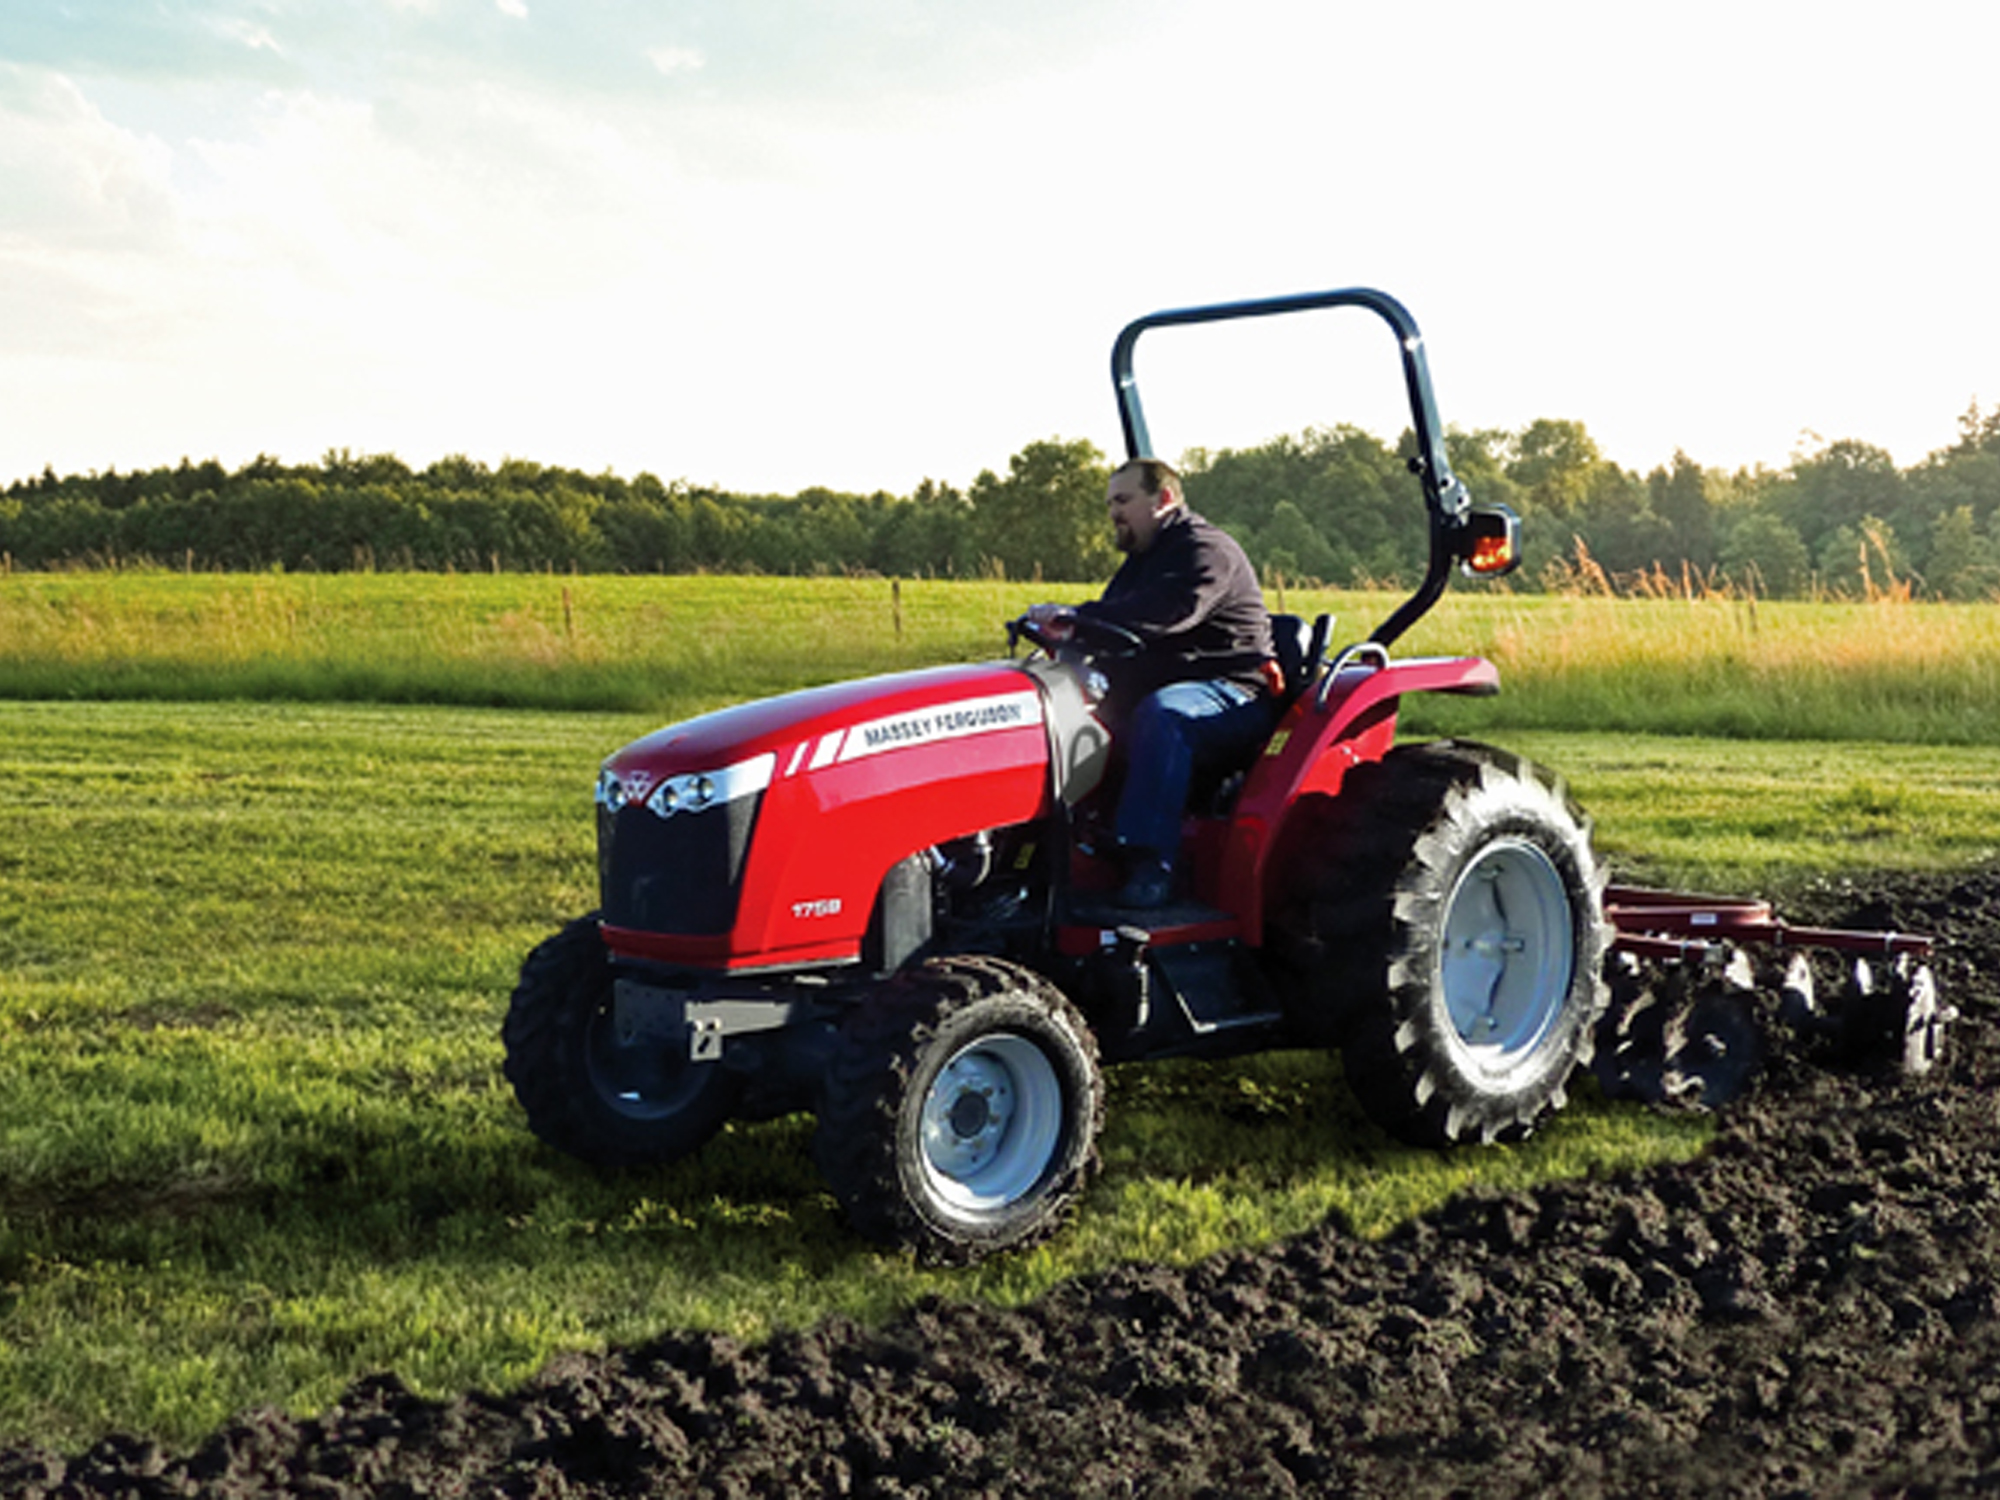 Tractor Attachments Product : Products g implement llc tractor and skid steer